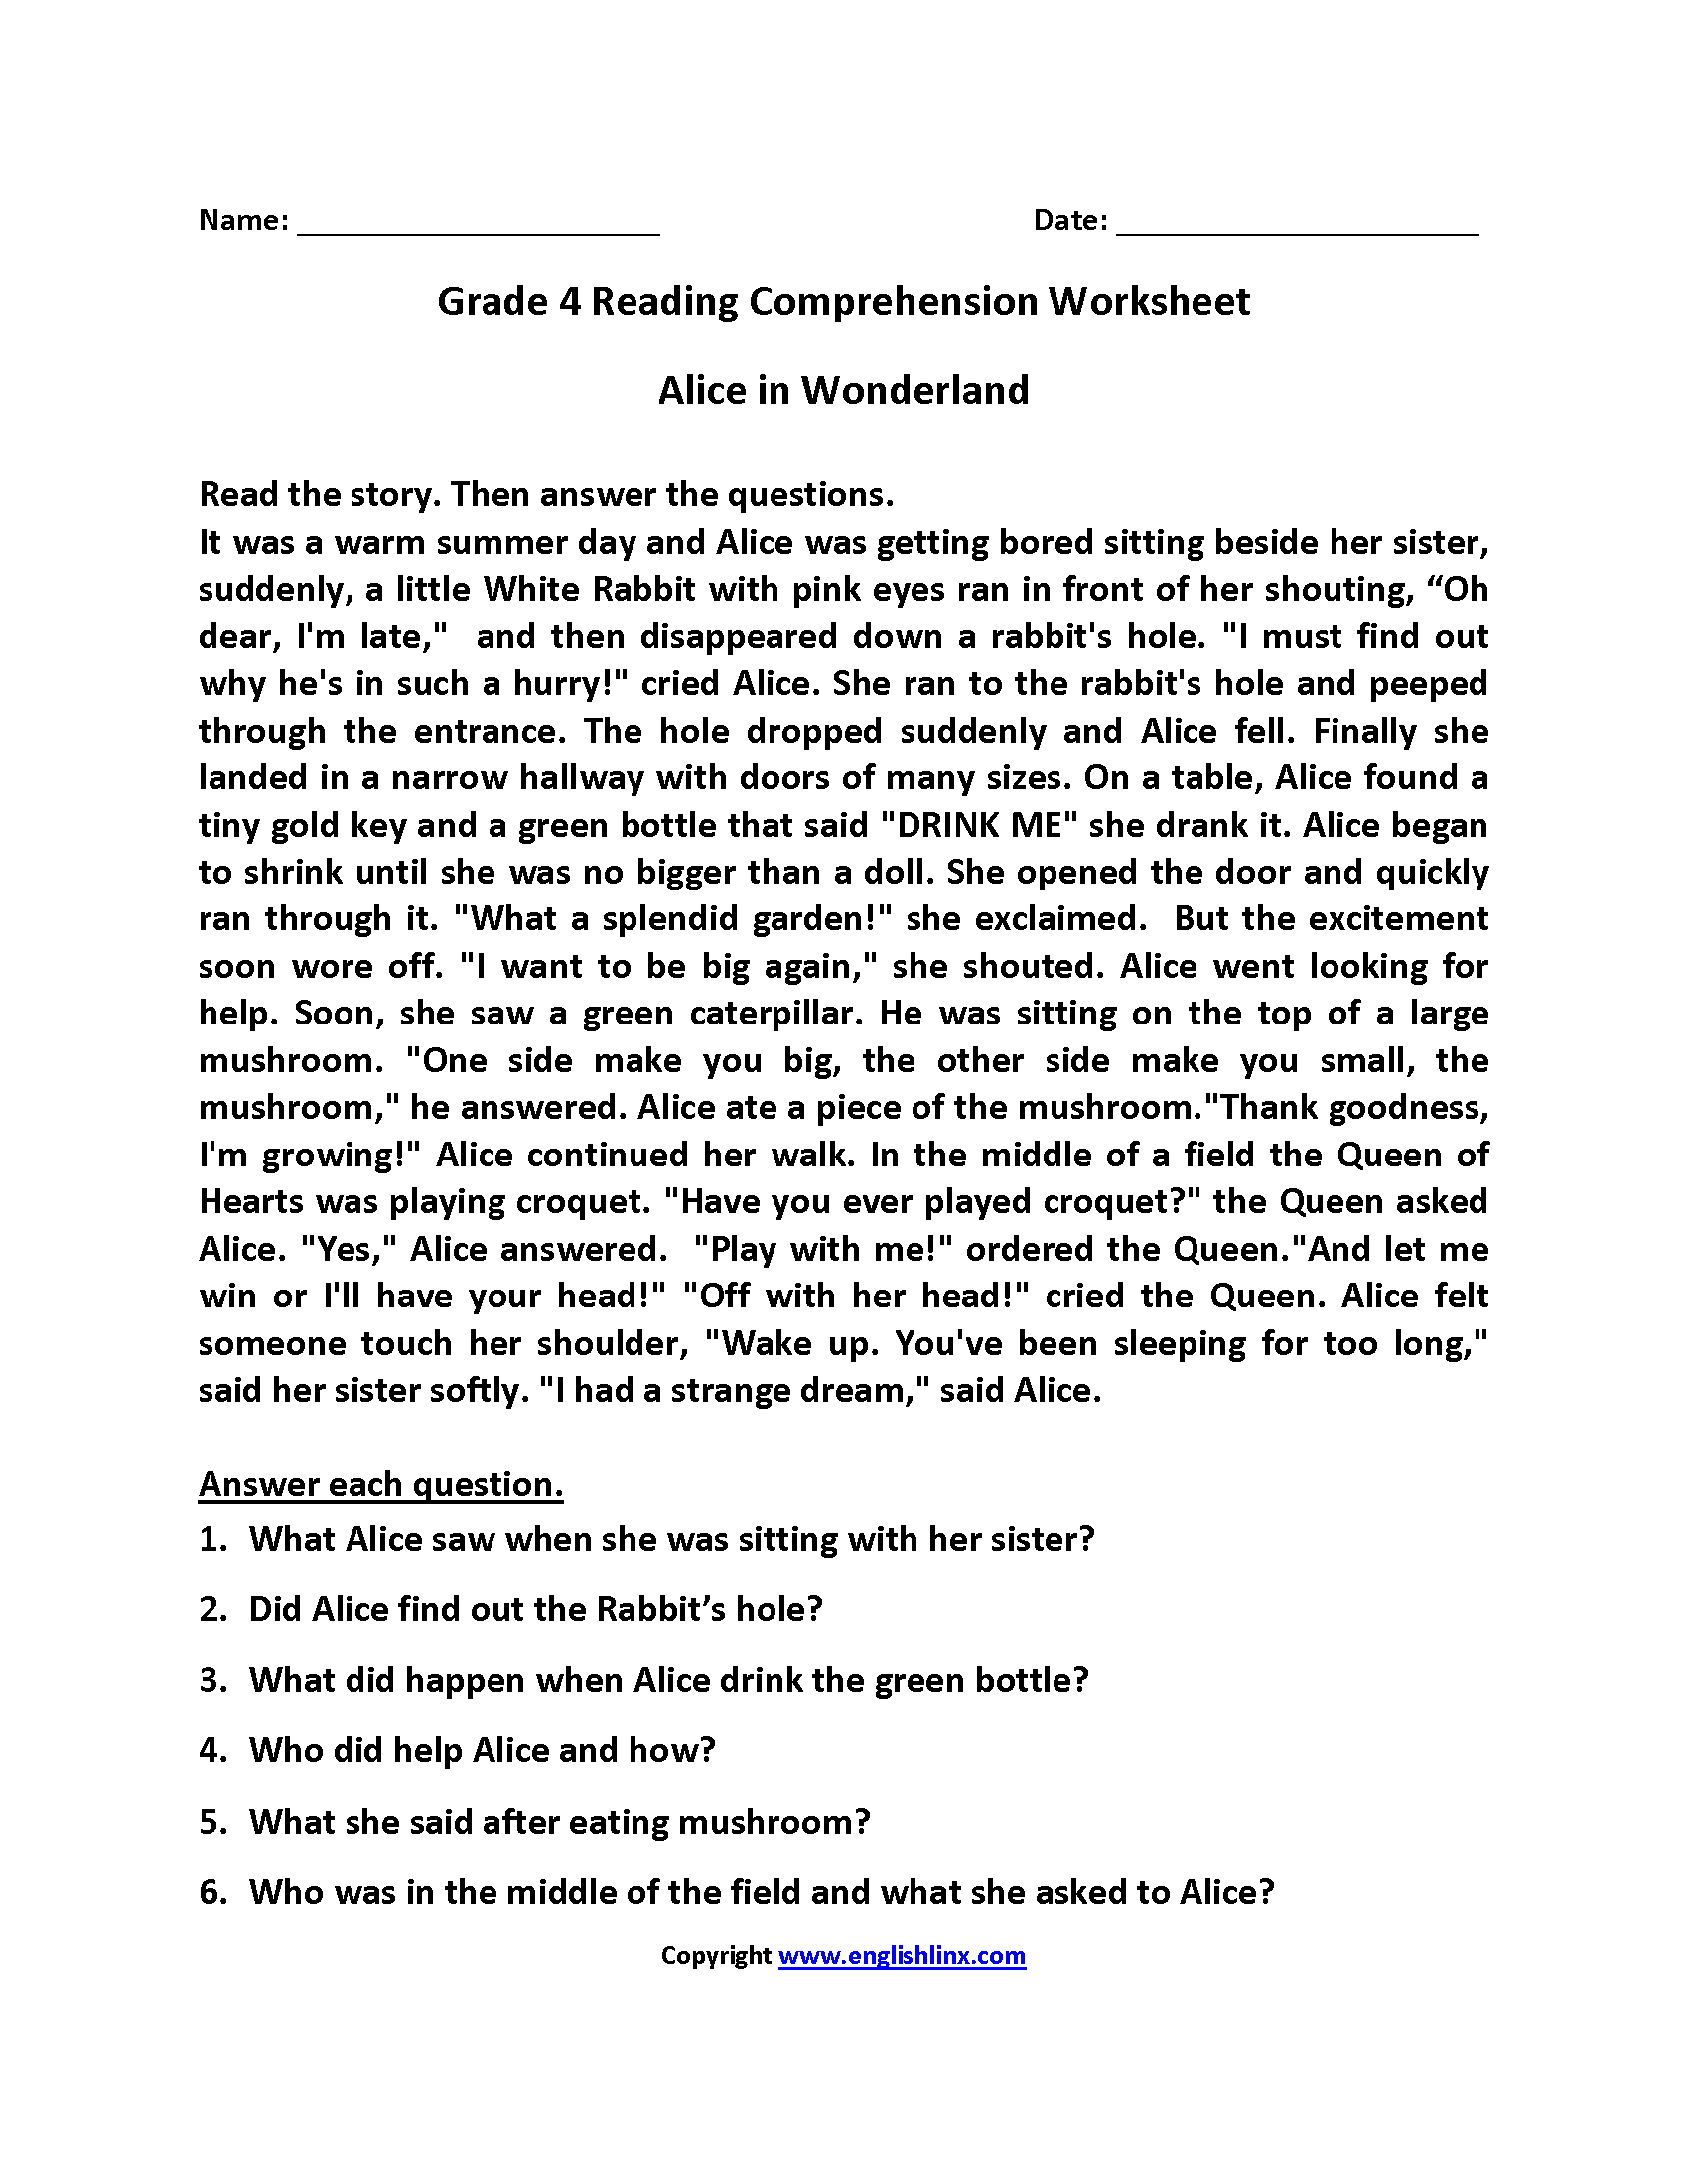 Worksheets Free 4th Grade Reading Comprehension Worksheets reading worksheets fourth grade worksheets